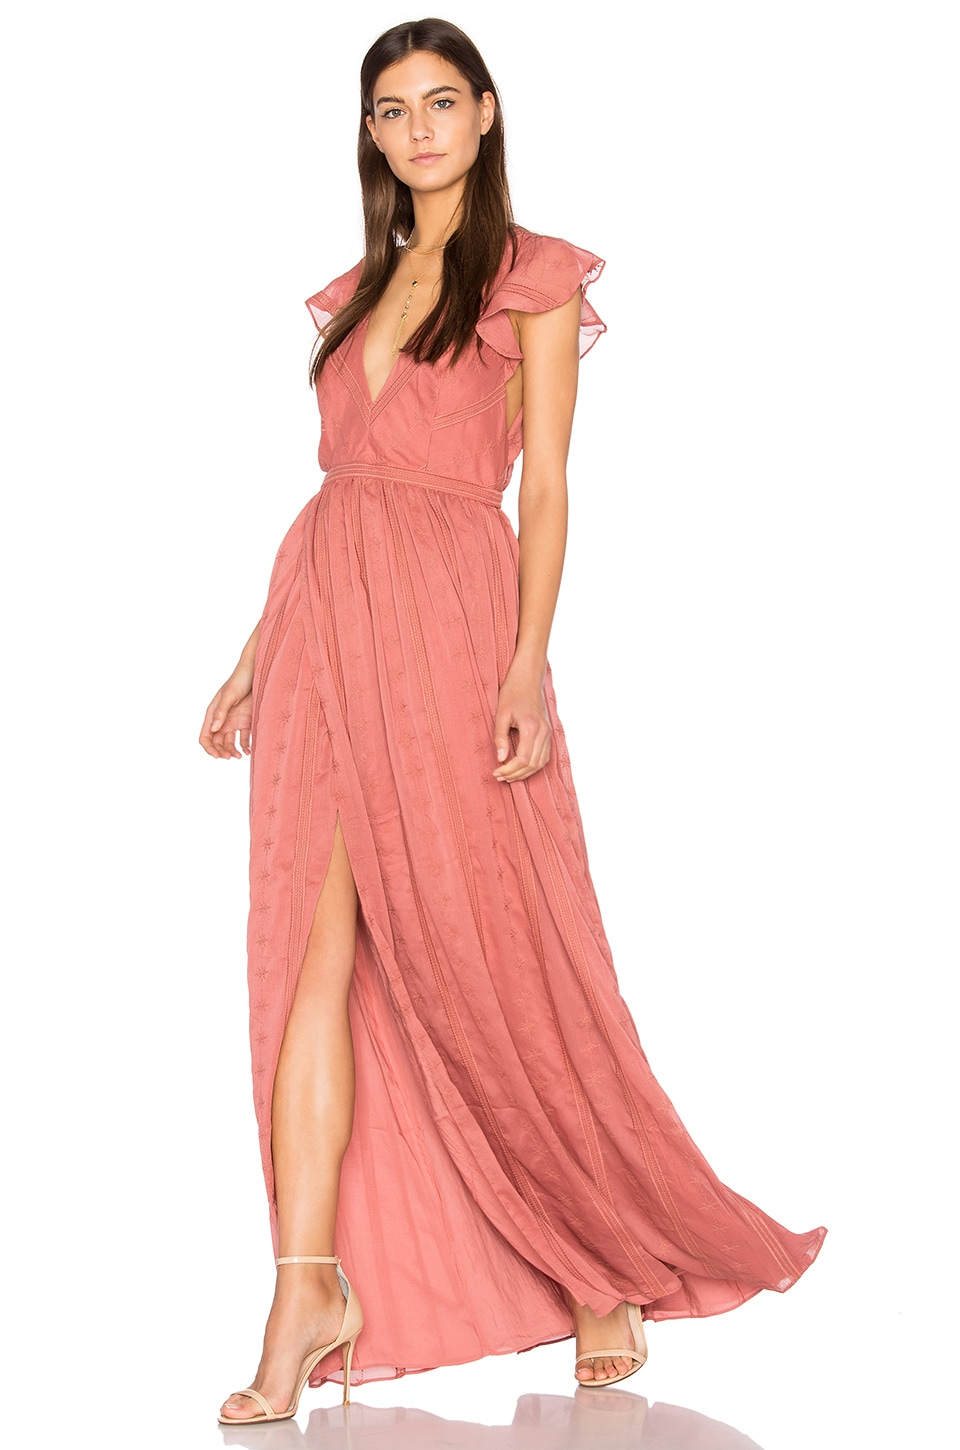 Getaway Maxi Dress by THE JETSET DIARIES